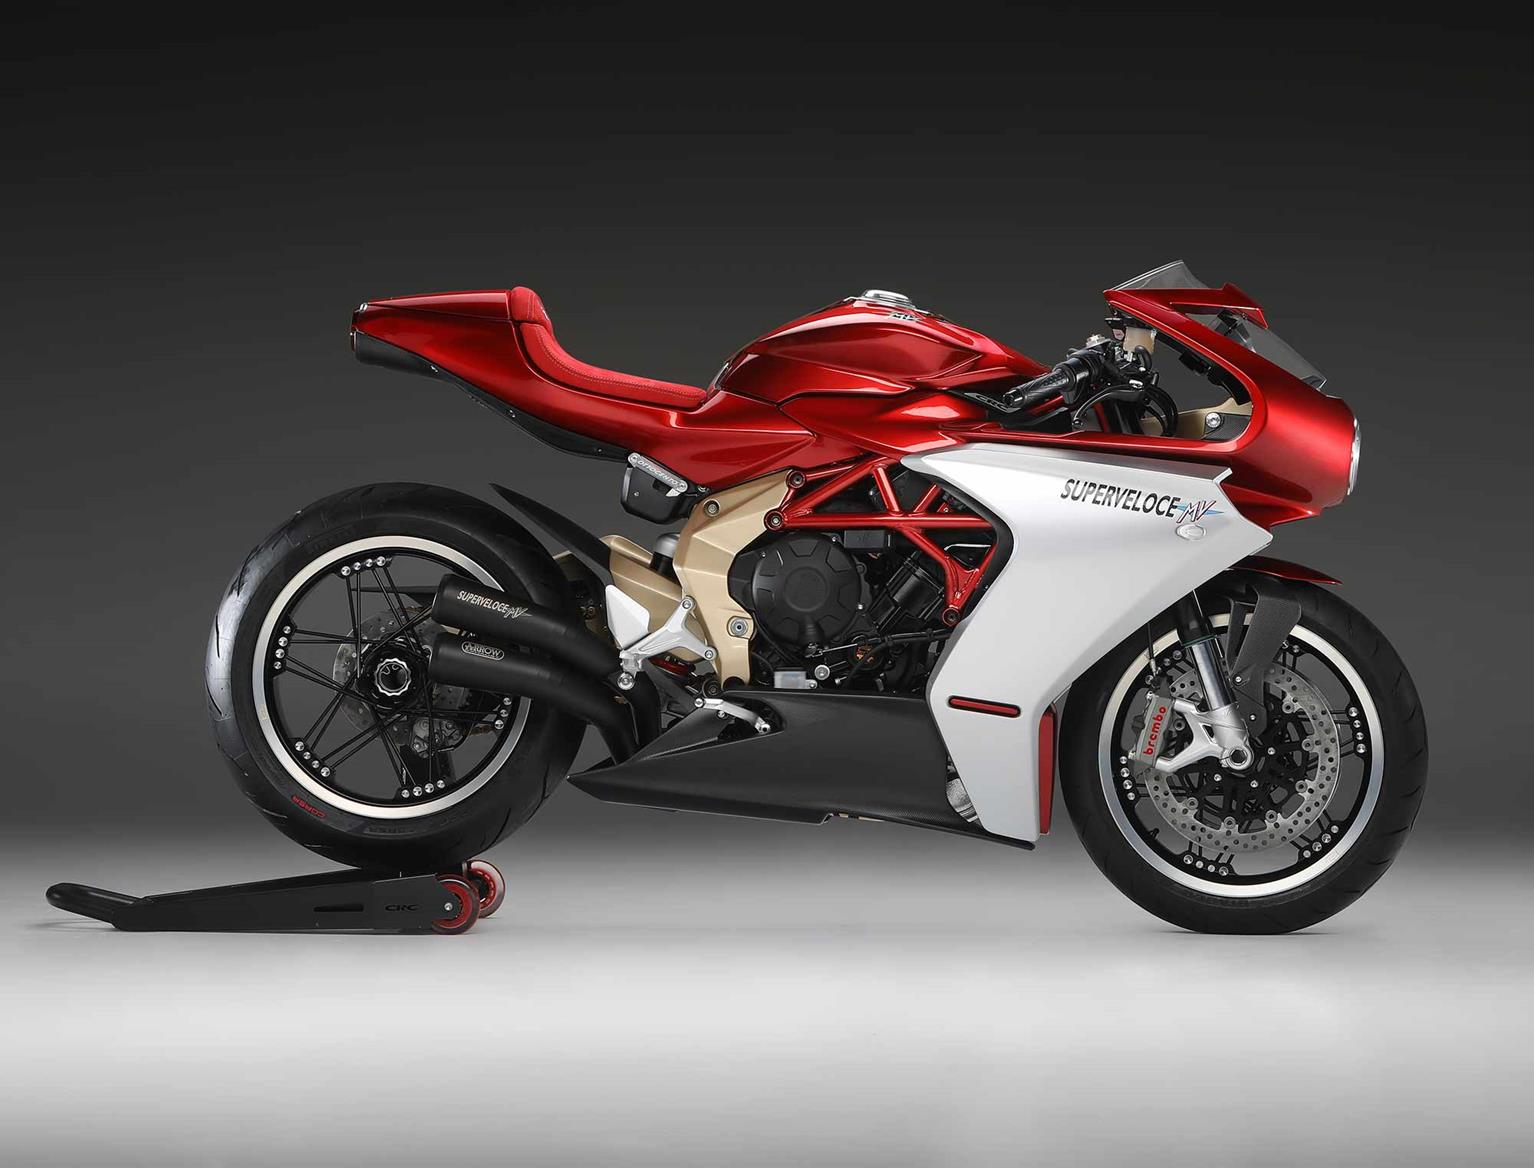 MV Agusta Superveloce 800 Serie Oro side-on